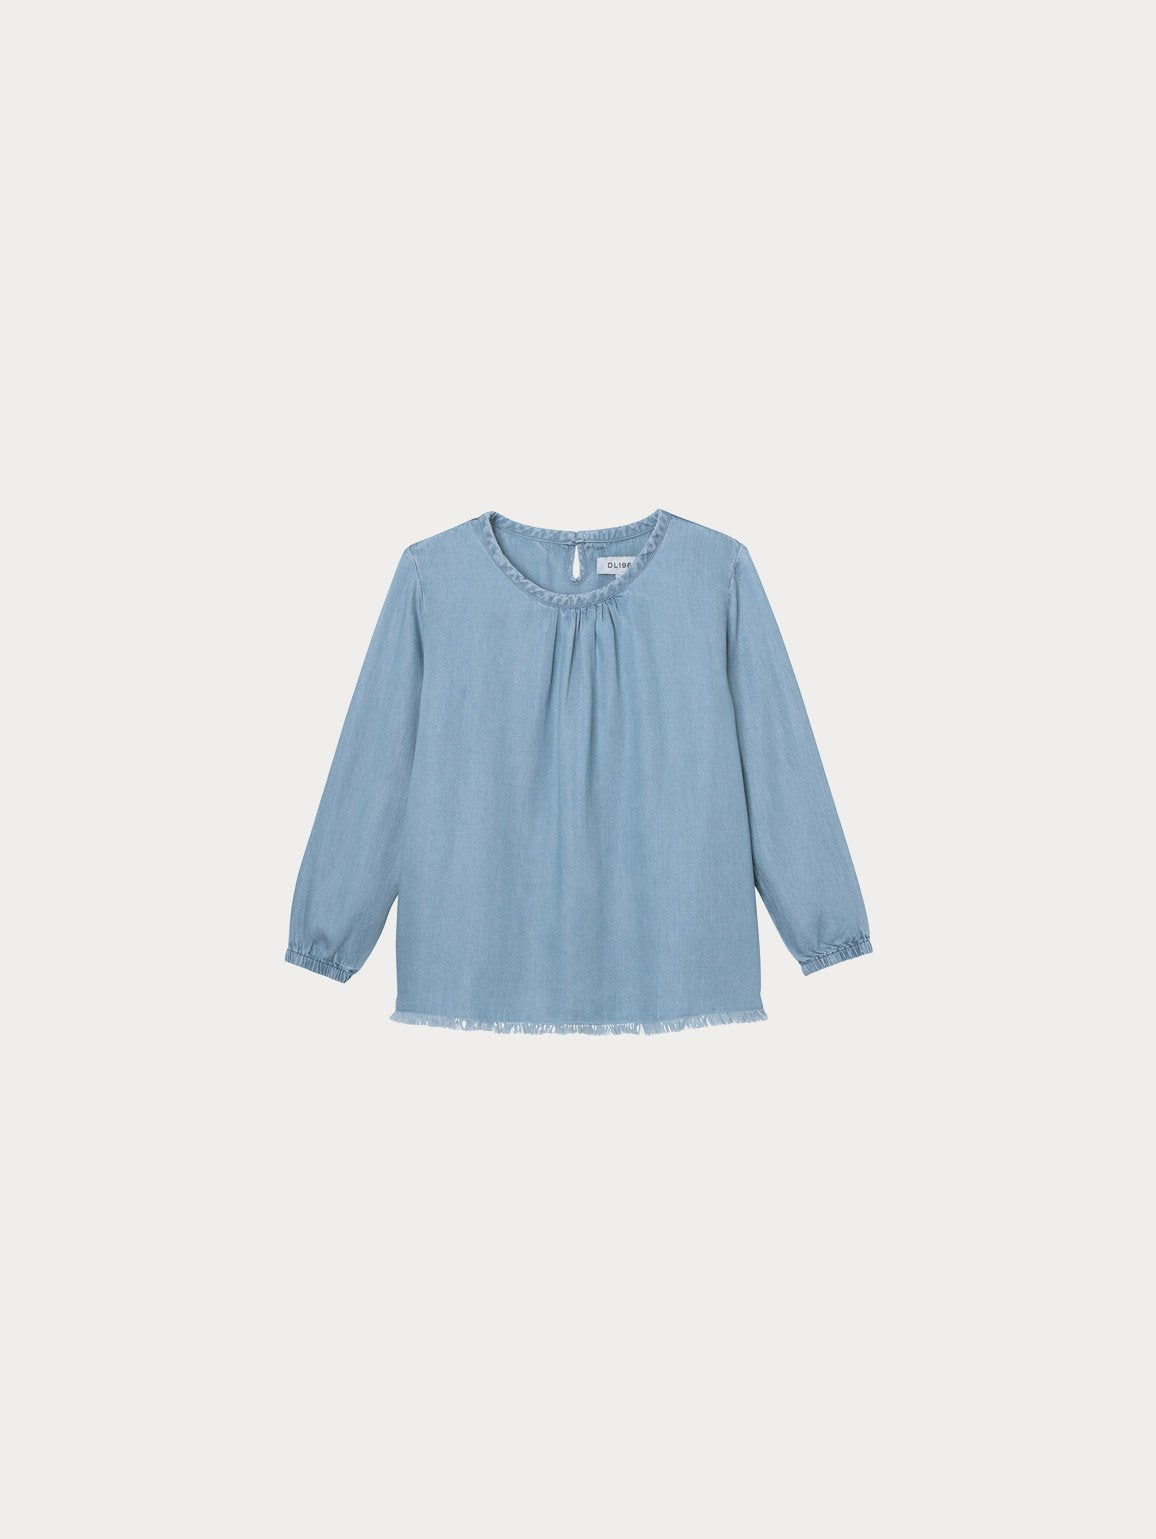 Remi Toddler Blouse | Midwash